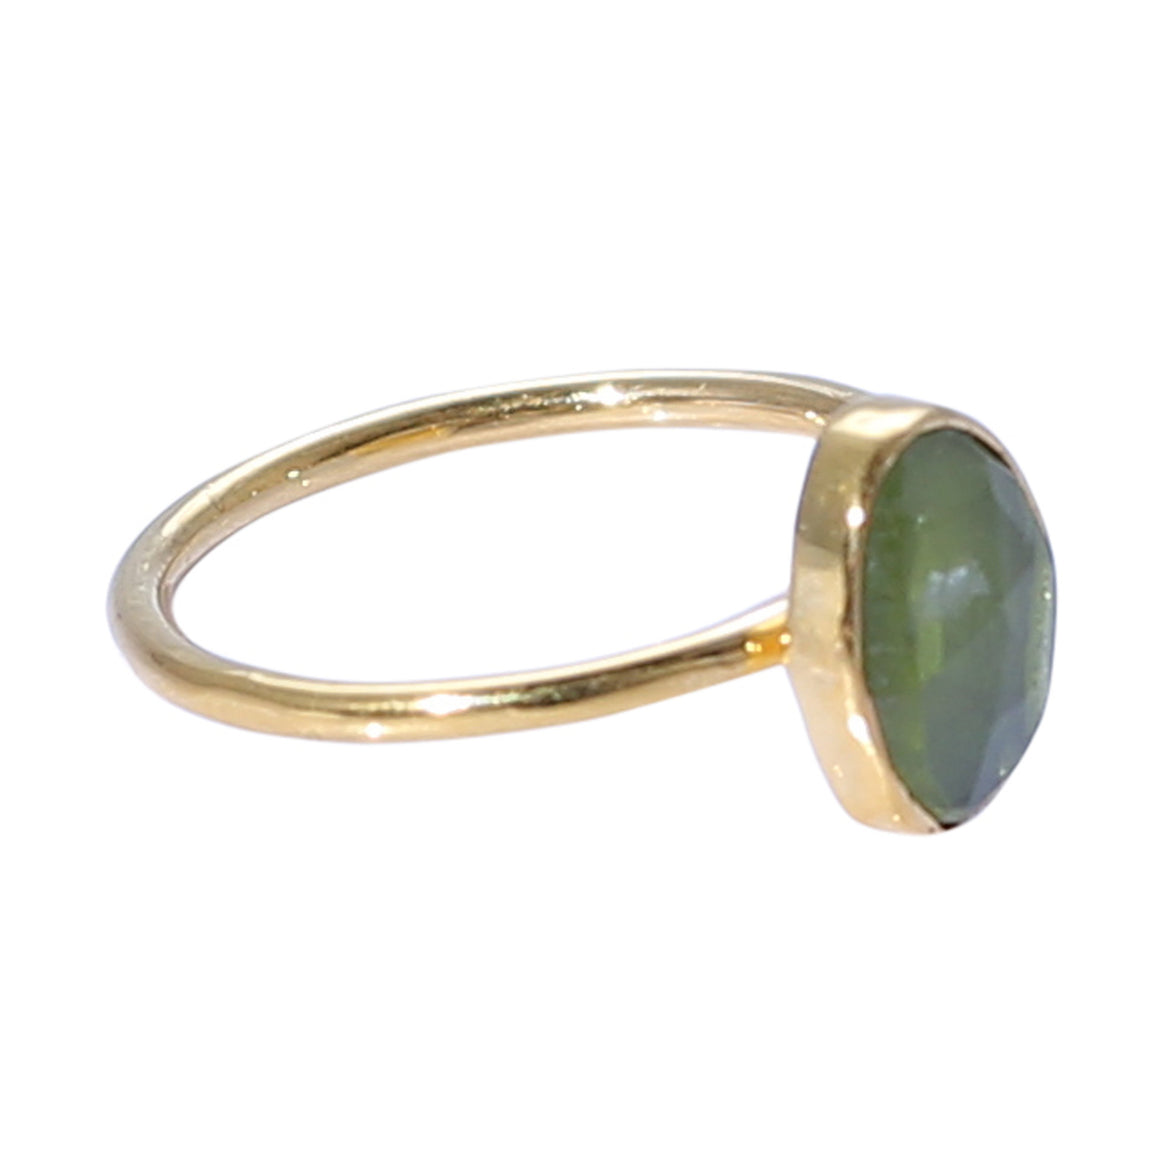 Sabyavi Ring Green Tourmaline Bezel Set Gold Plated Ring Sterling Silver